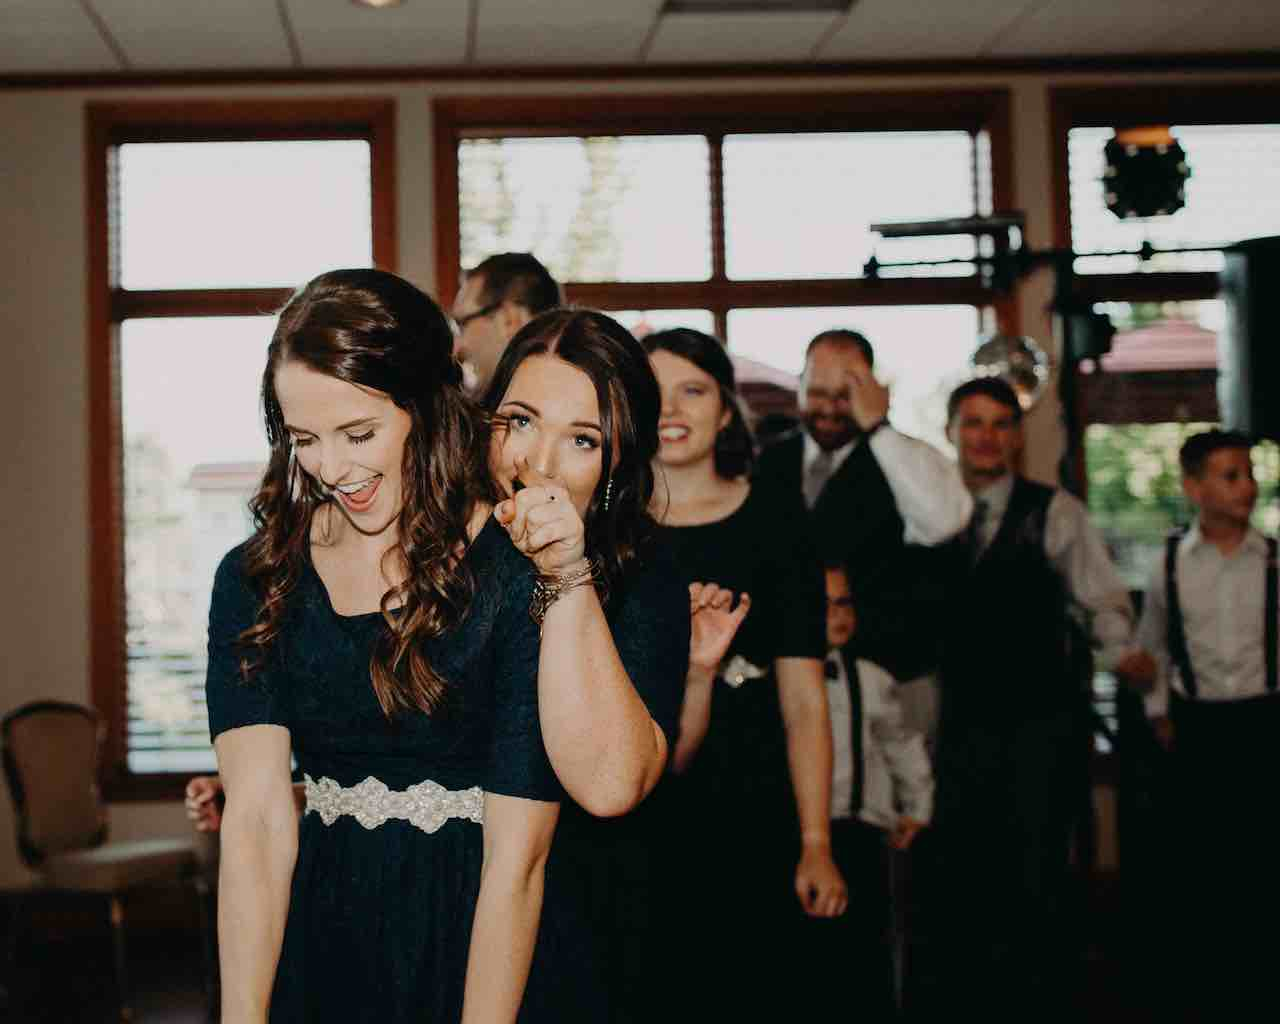 A conga line gets everyone at the wedding out of their chairs